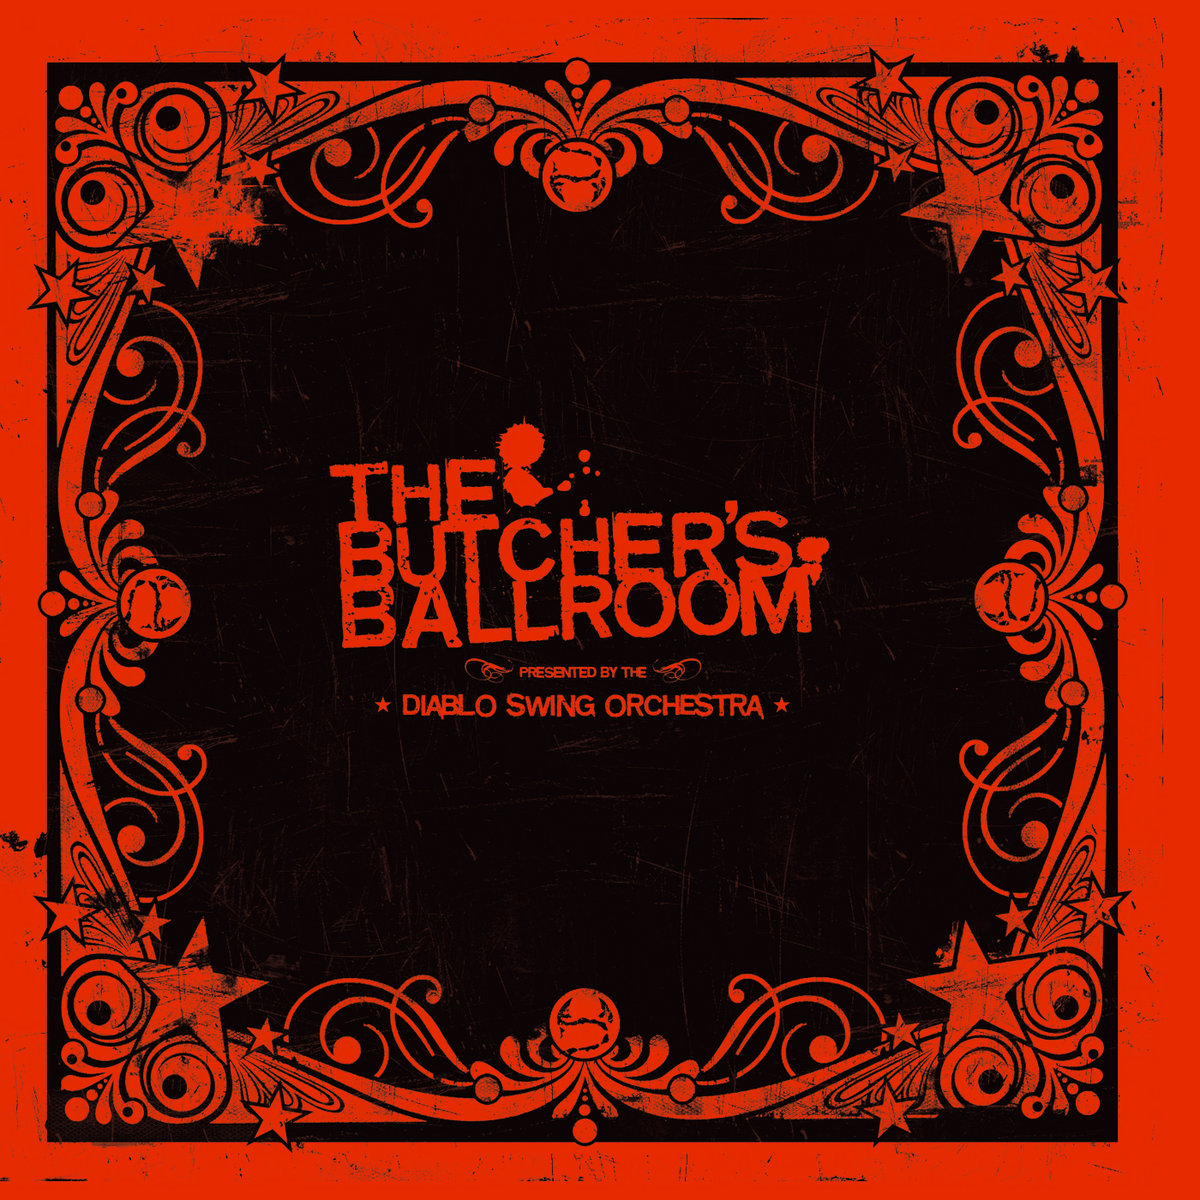 Diablo Swing Orchestra - The Butcher's Ballroom (Re-released 2007)